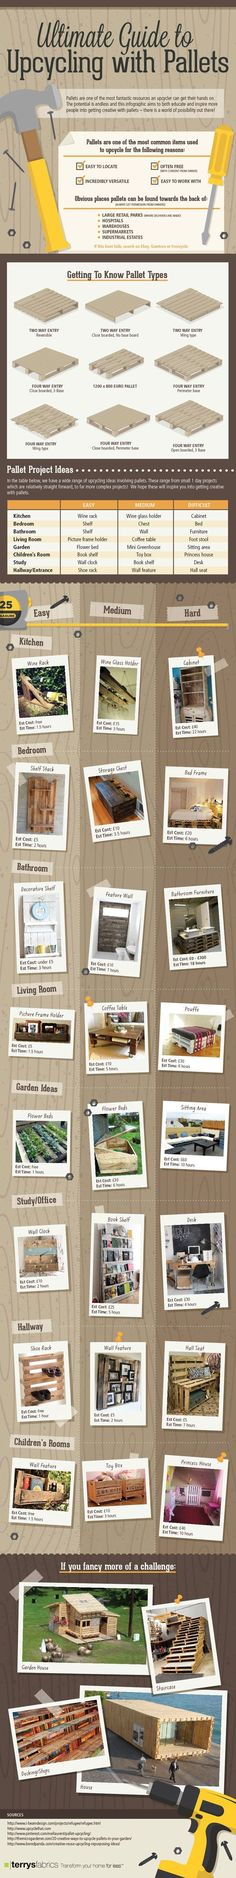 Pallets, recycled pallet, shipping pallet, infographic, palletecture, recycled pallet furniture, recycled materials, sustainable design, gre...